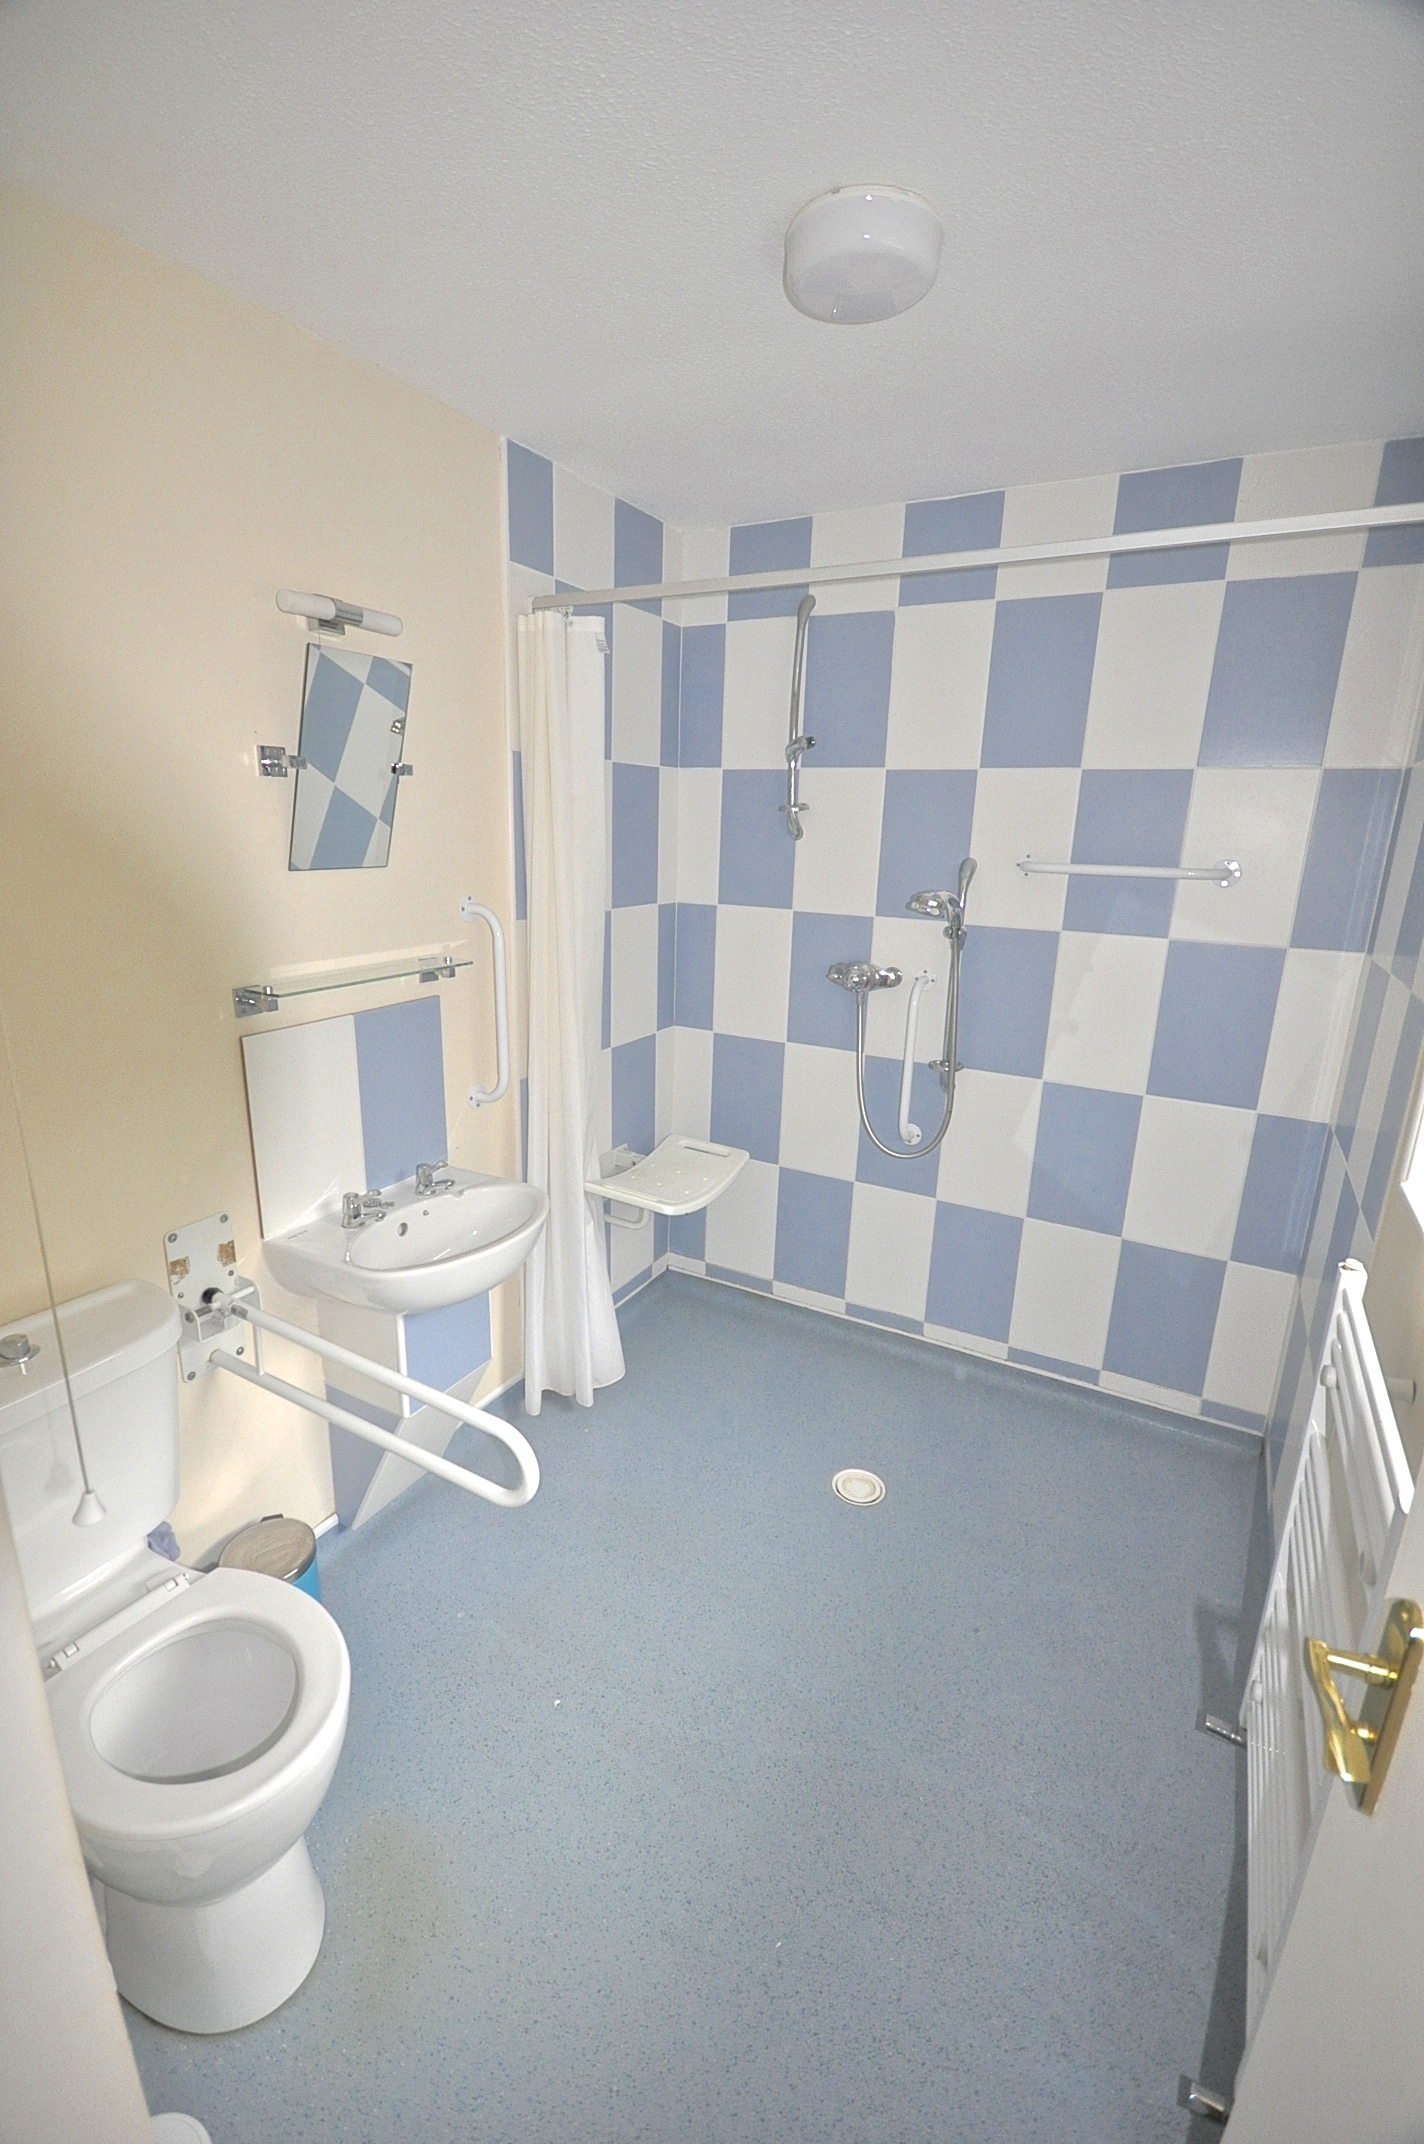 Accessiblity   Fantastic for families and fully accessible